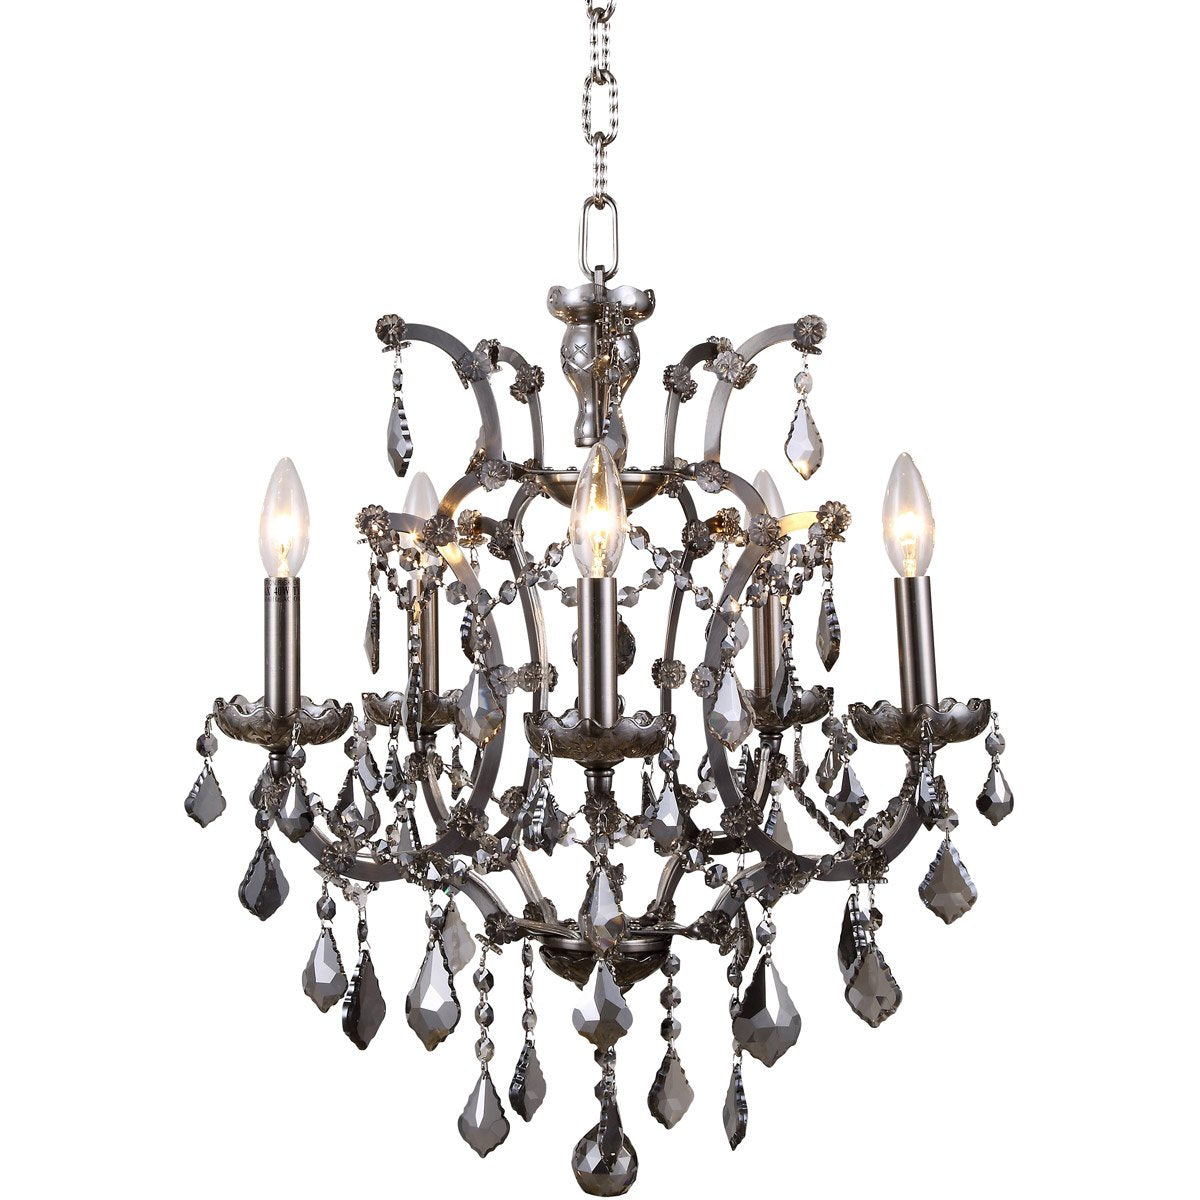 Elena 18 Crystal Mini Chandelier With 5 Lights - Raw Steel Finish And Grey Crystal Chandelier